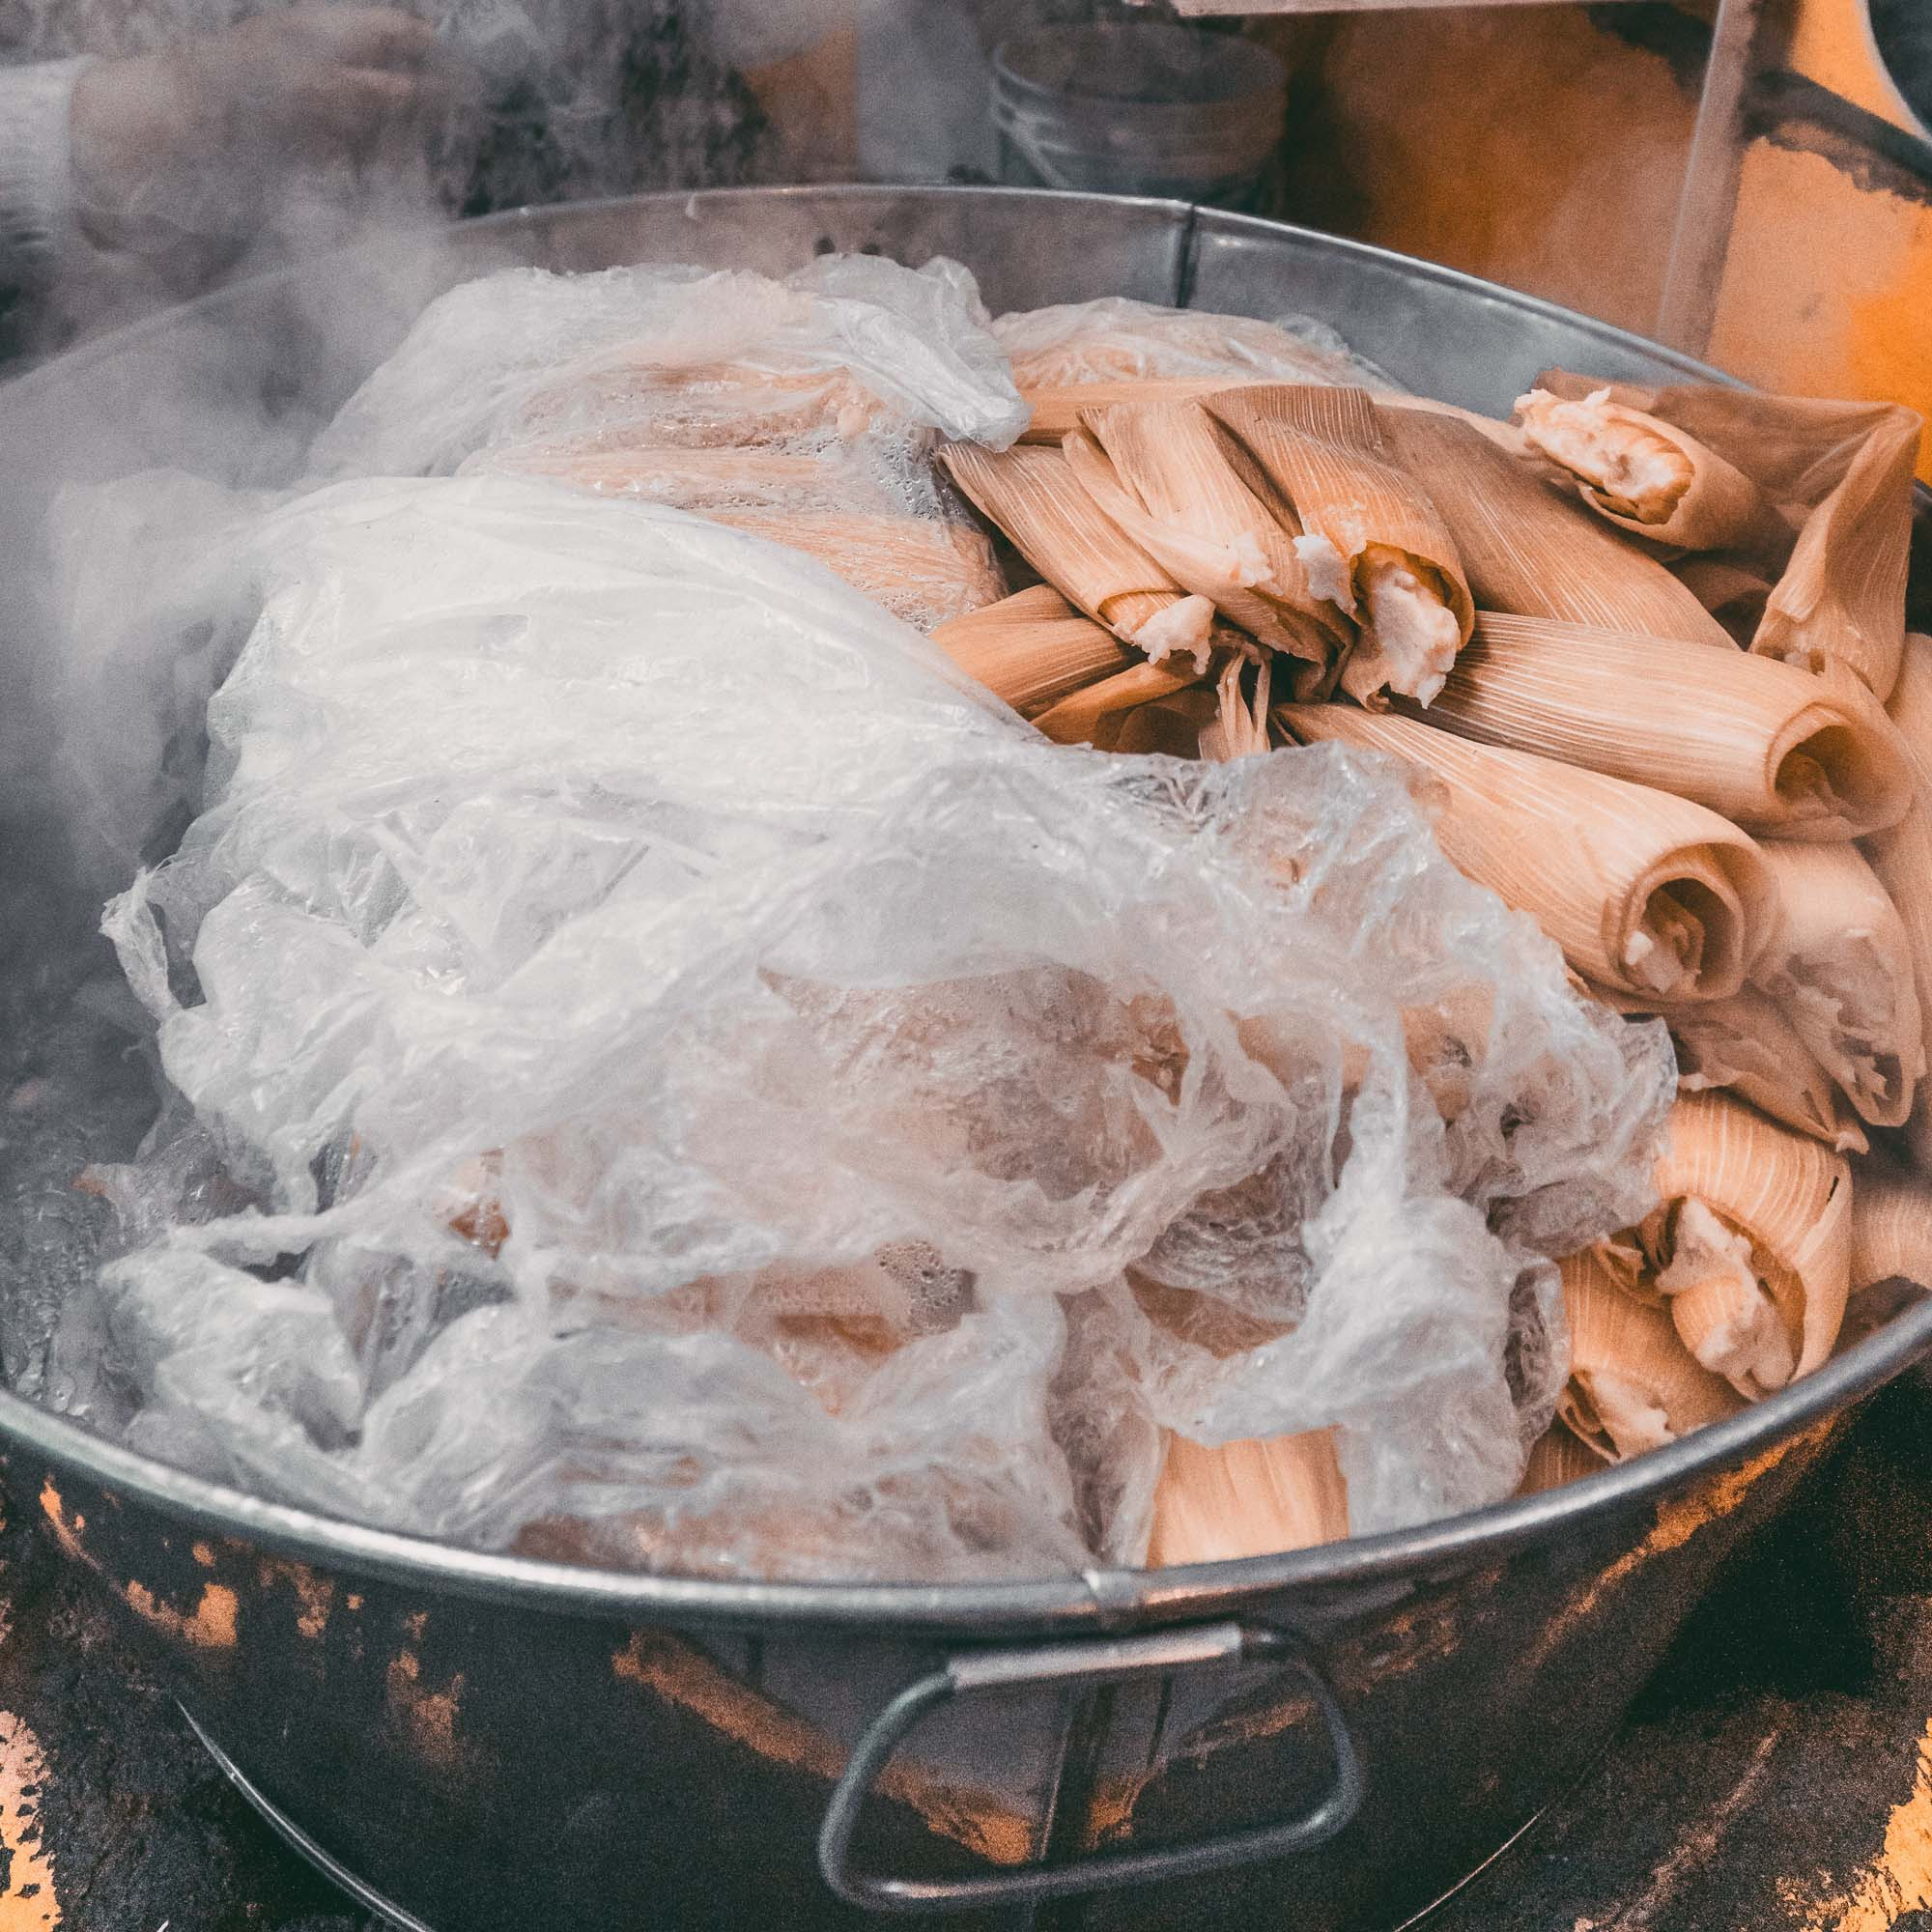 Tamales in Mexico City